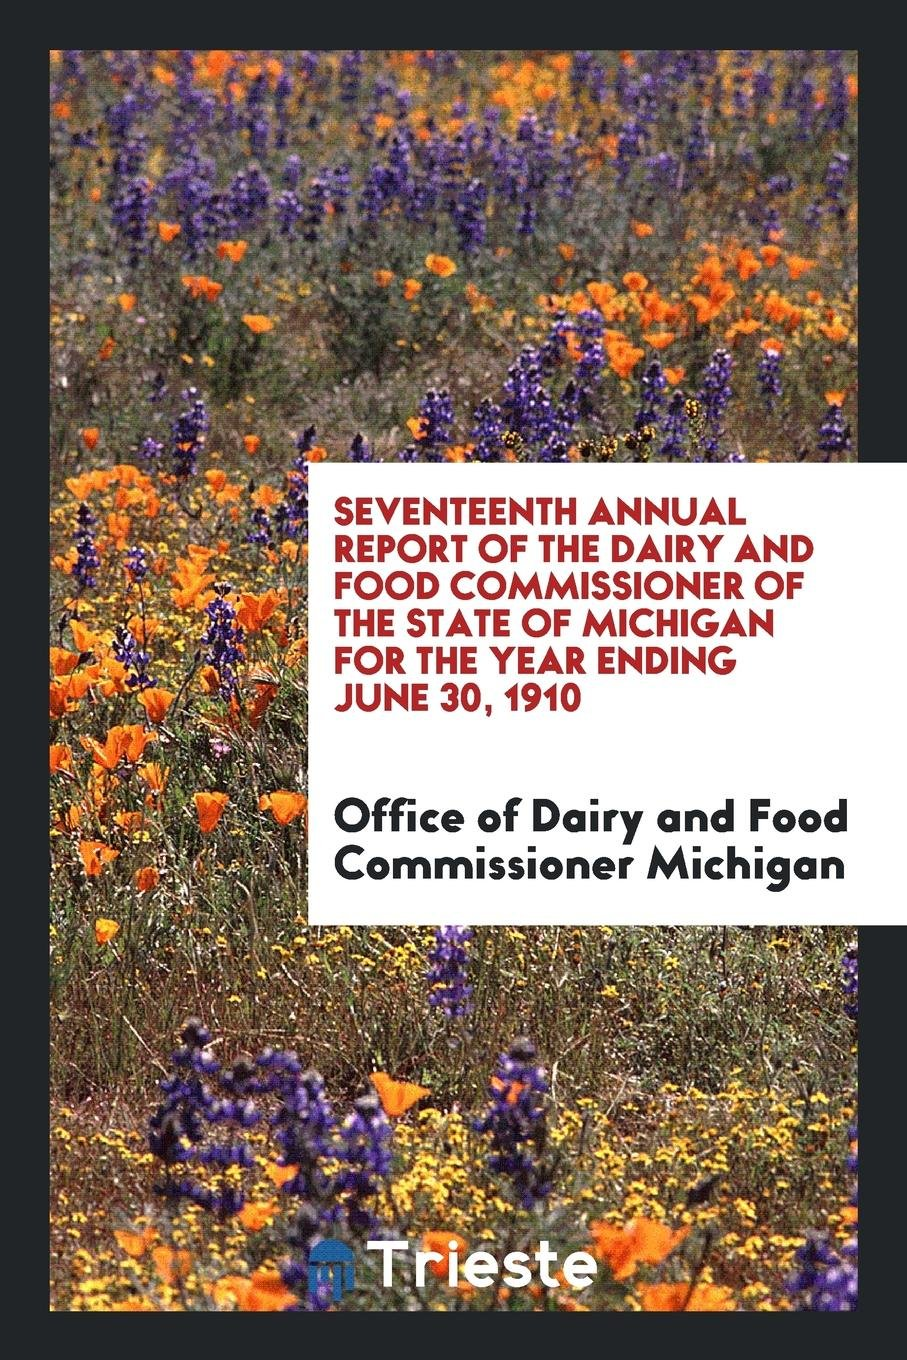 Download Seventeenth Annual Report of the Dairy and Food Commissioner of the State of Michigan for the Year Ending June 30, 1910 ebook